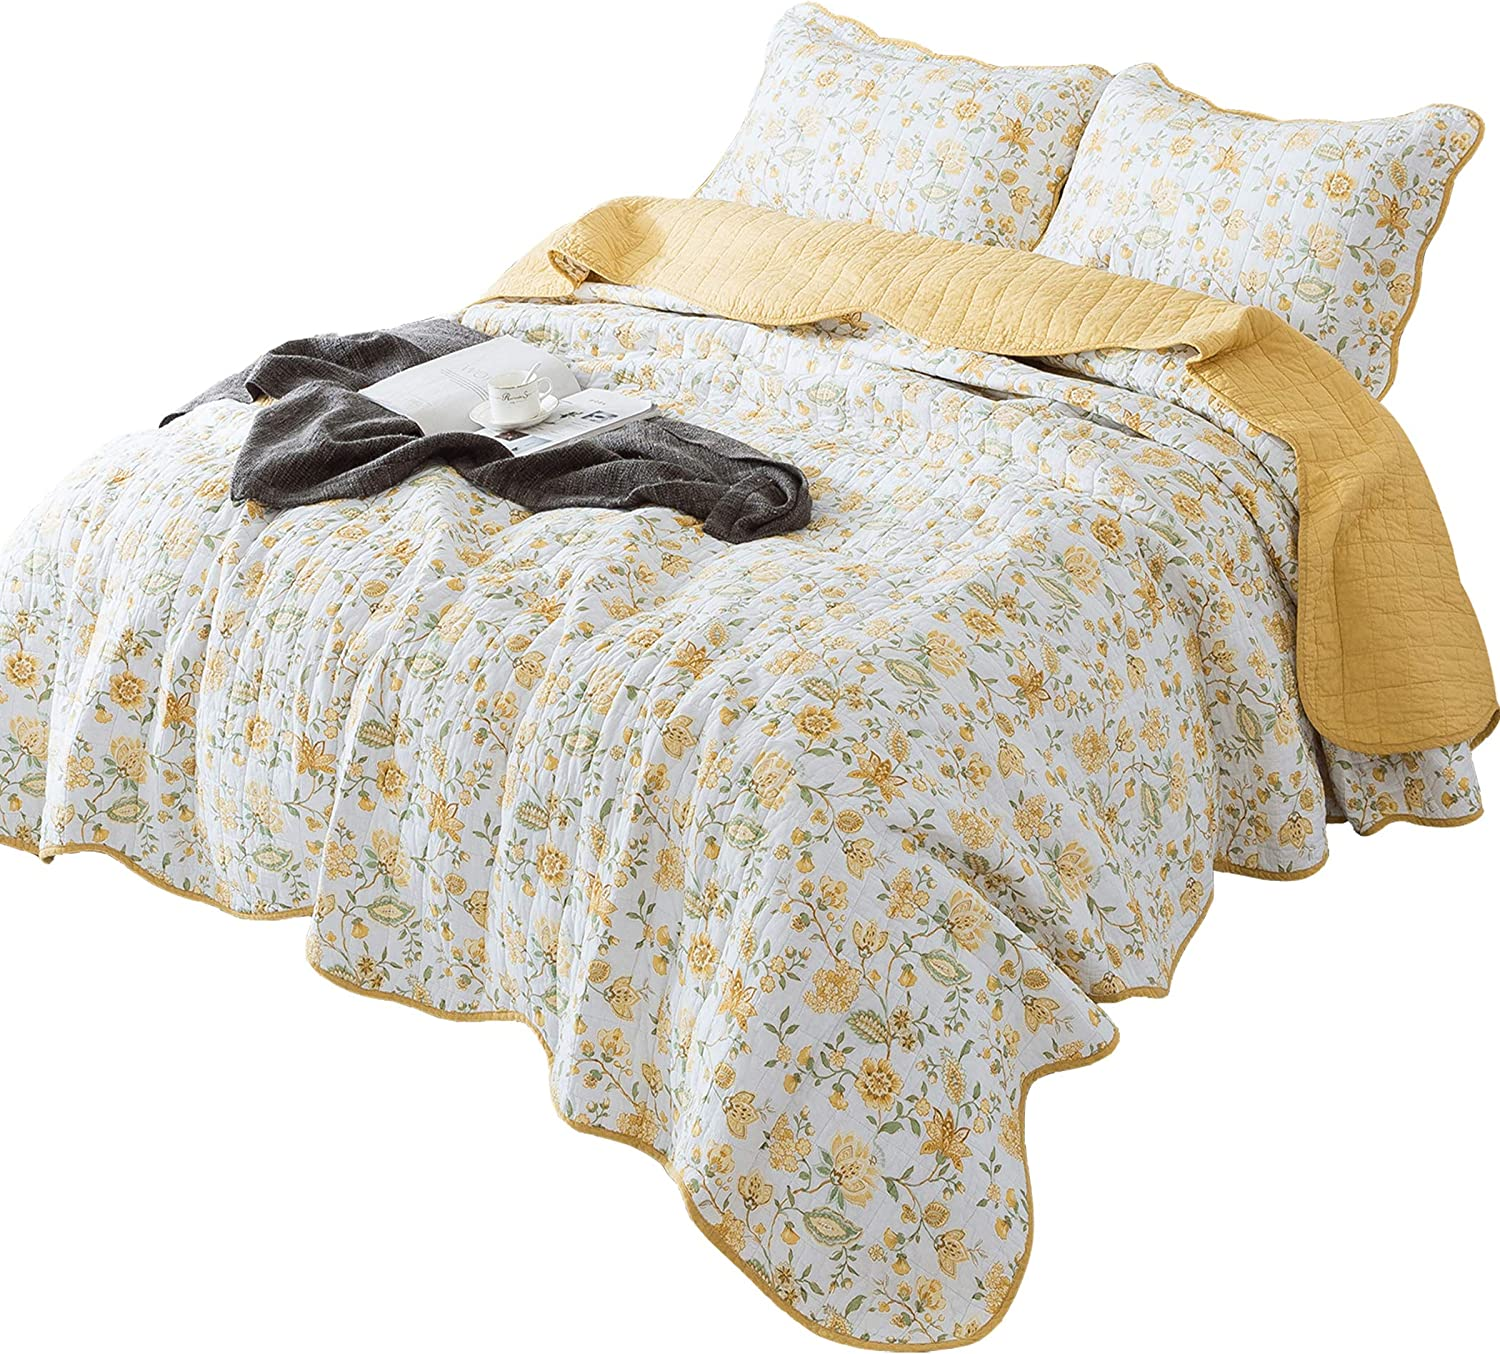 3 Piece Quilt Set, 100% Cotton Printed, Oversize Twin, Queen and King. Floral Pattern, Pre-Washed Soft, Lightweight Quilt, Coverlet and Bedspread, Good for All Seasons. (Yellow Floral, Oversize King)